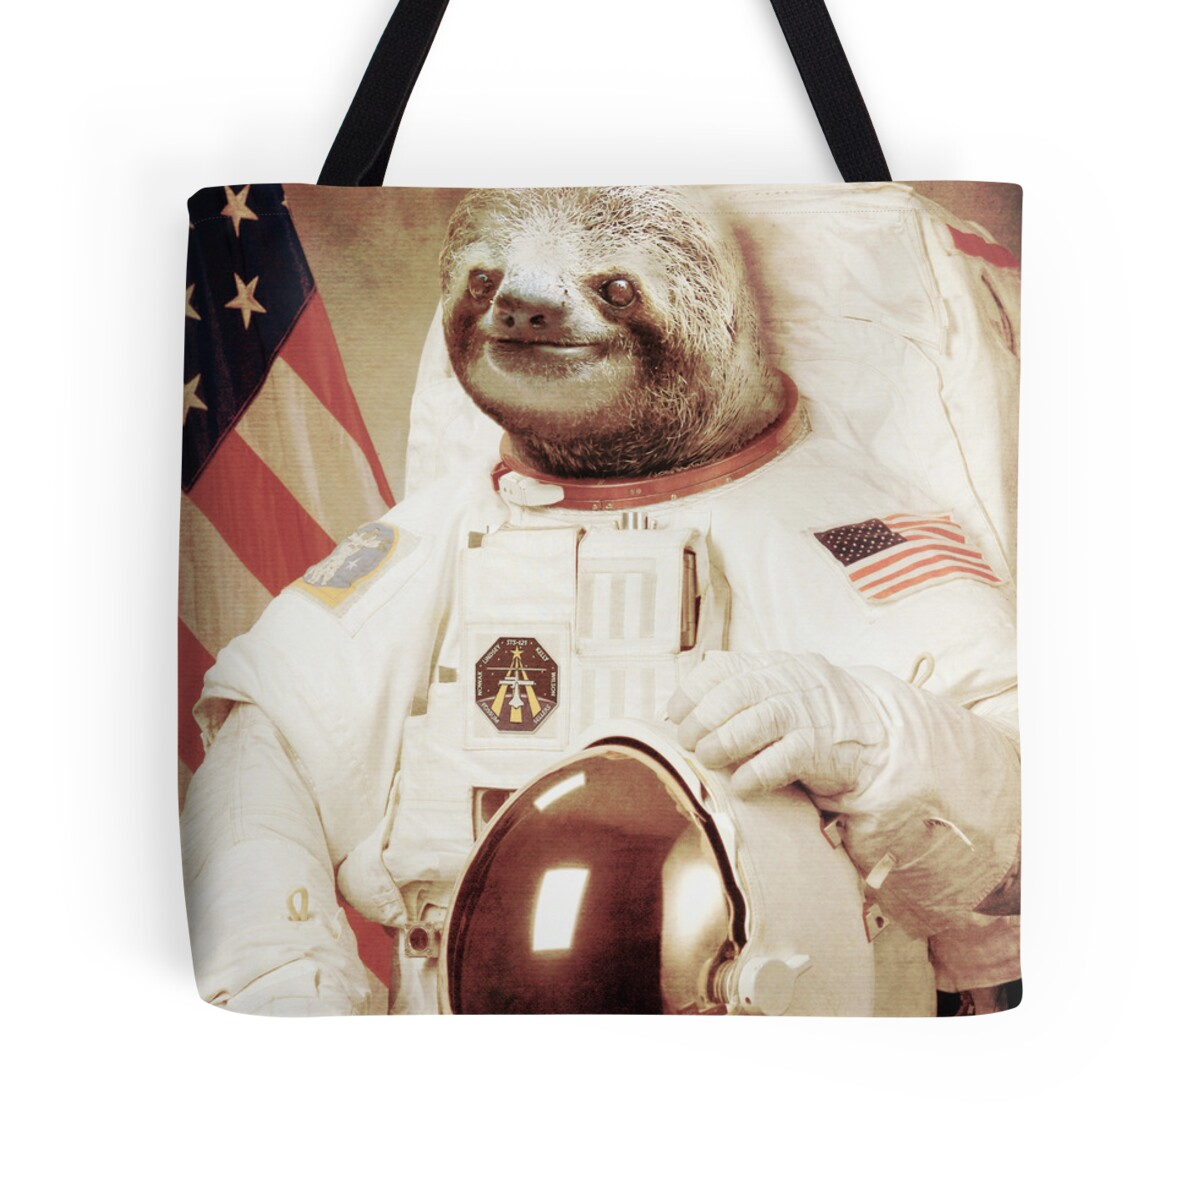 """""""Astronaut Sloth"""" Tote Bags by BakusPT 